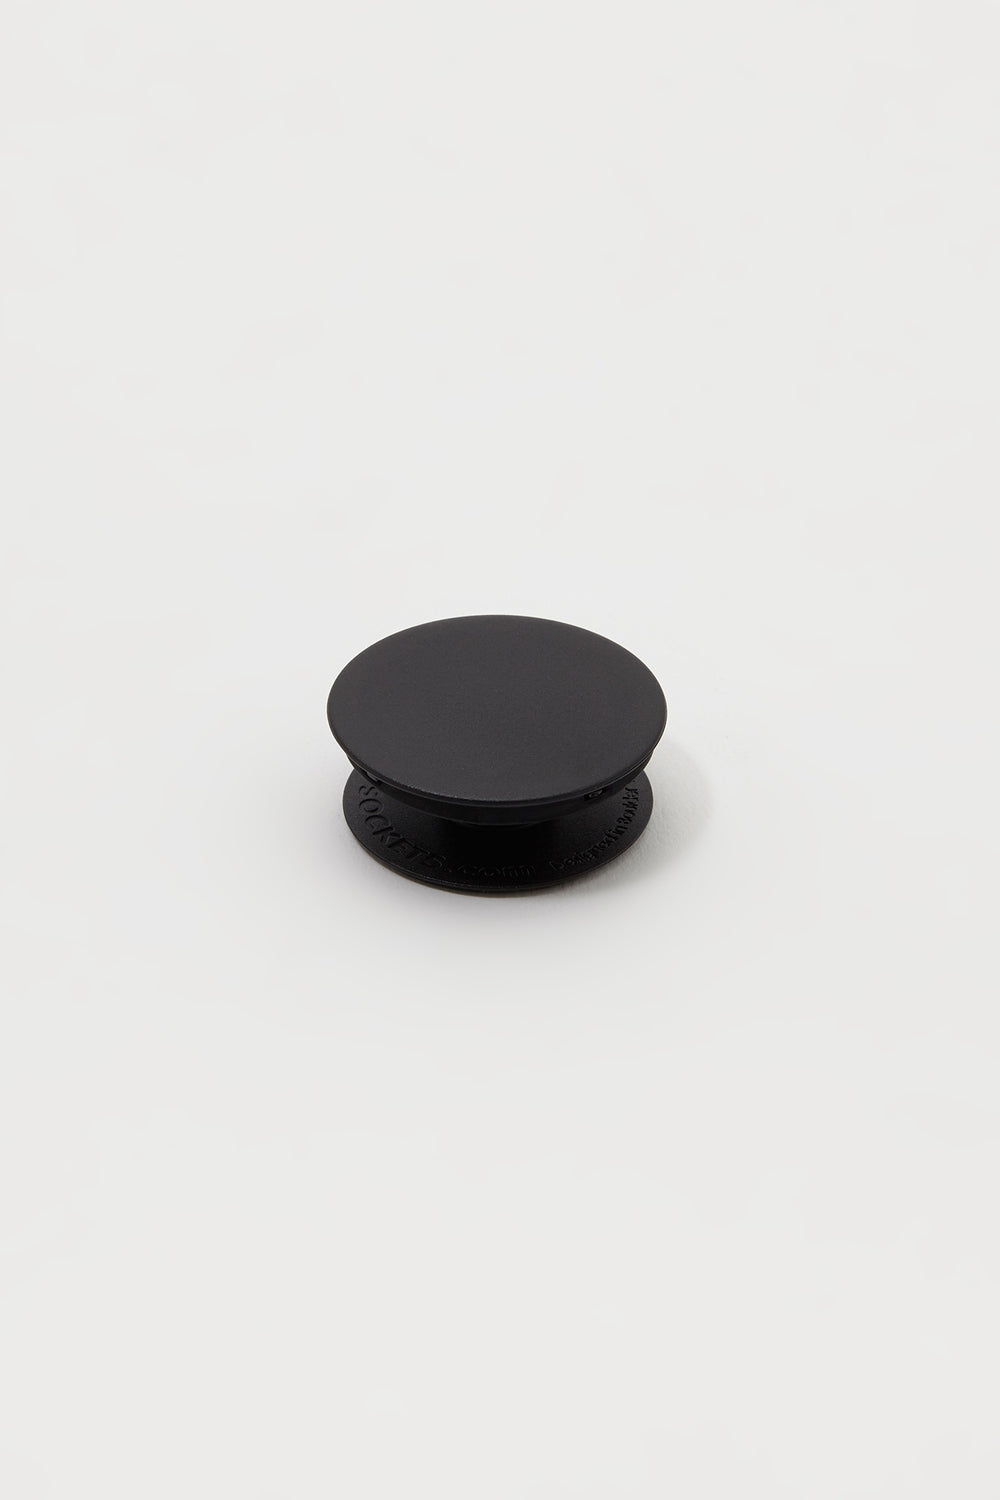 Black Popsocket Phone Grip and Stand Black